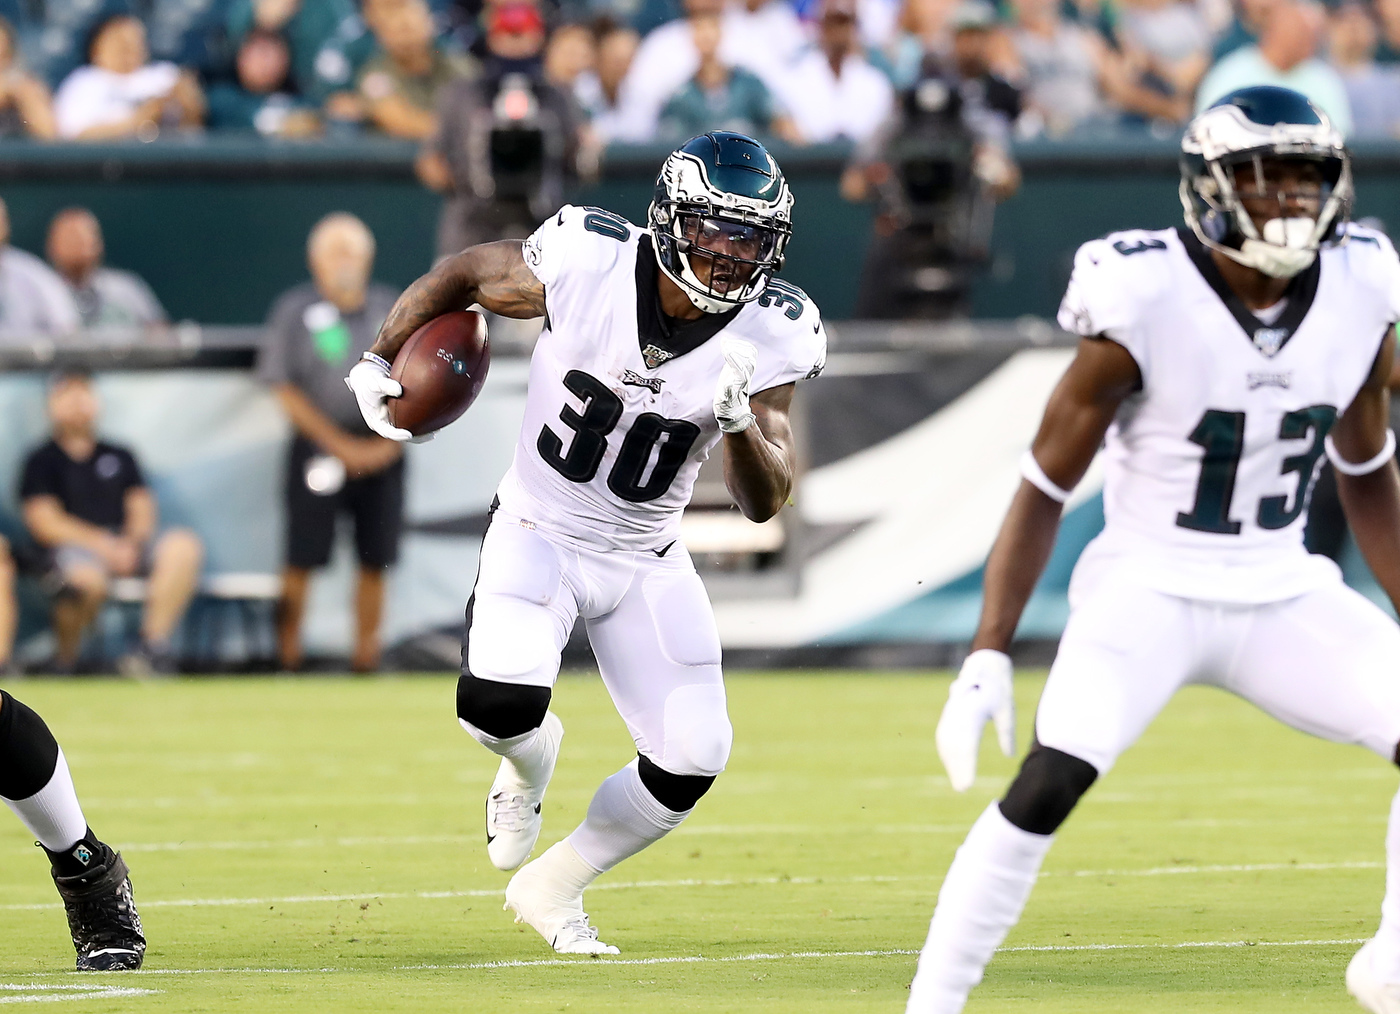 UPDATE: Eagles vs. Ravens preseason game ends early due to severe weather conditions | Everything to know